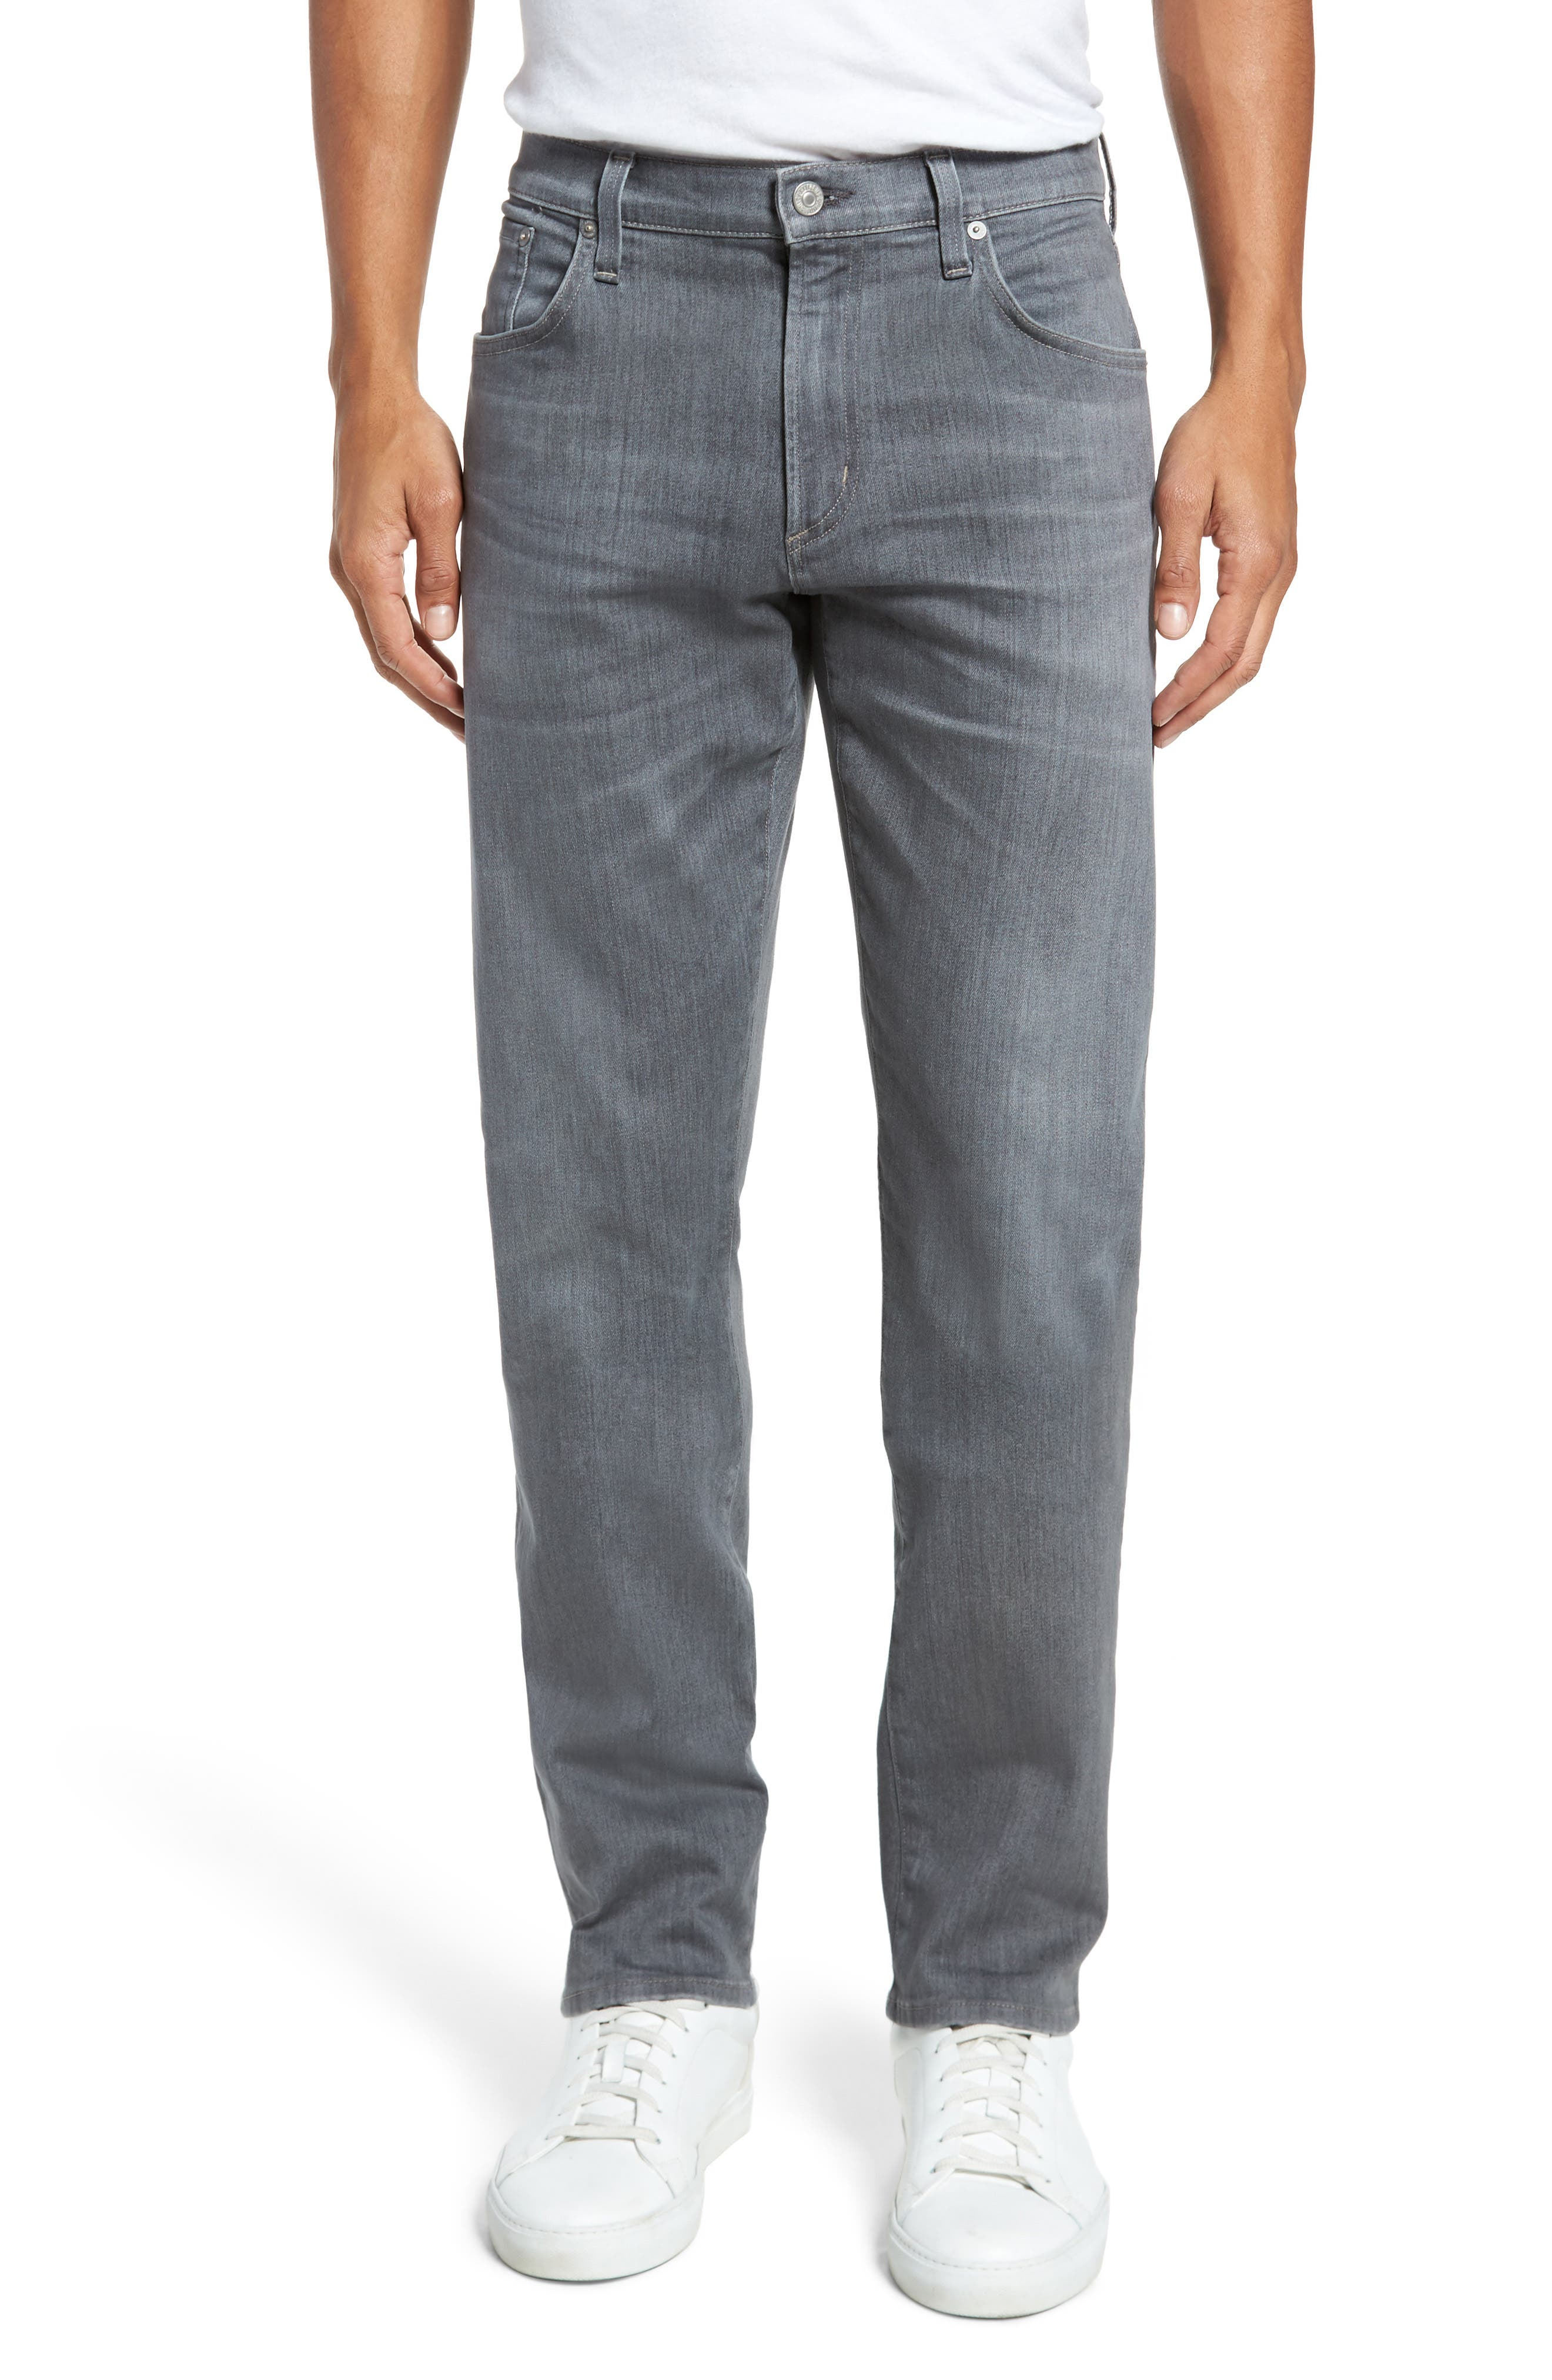 PERFORM - Gage Slim Straight Fit Jeans,                         Main,                         color, Gull Grey